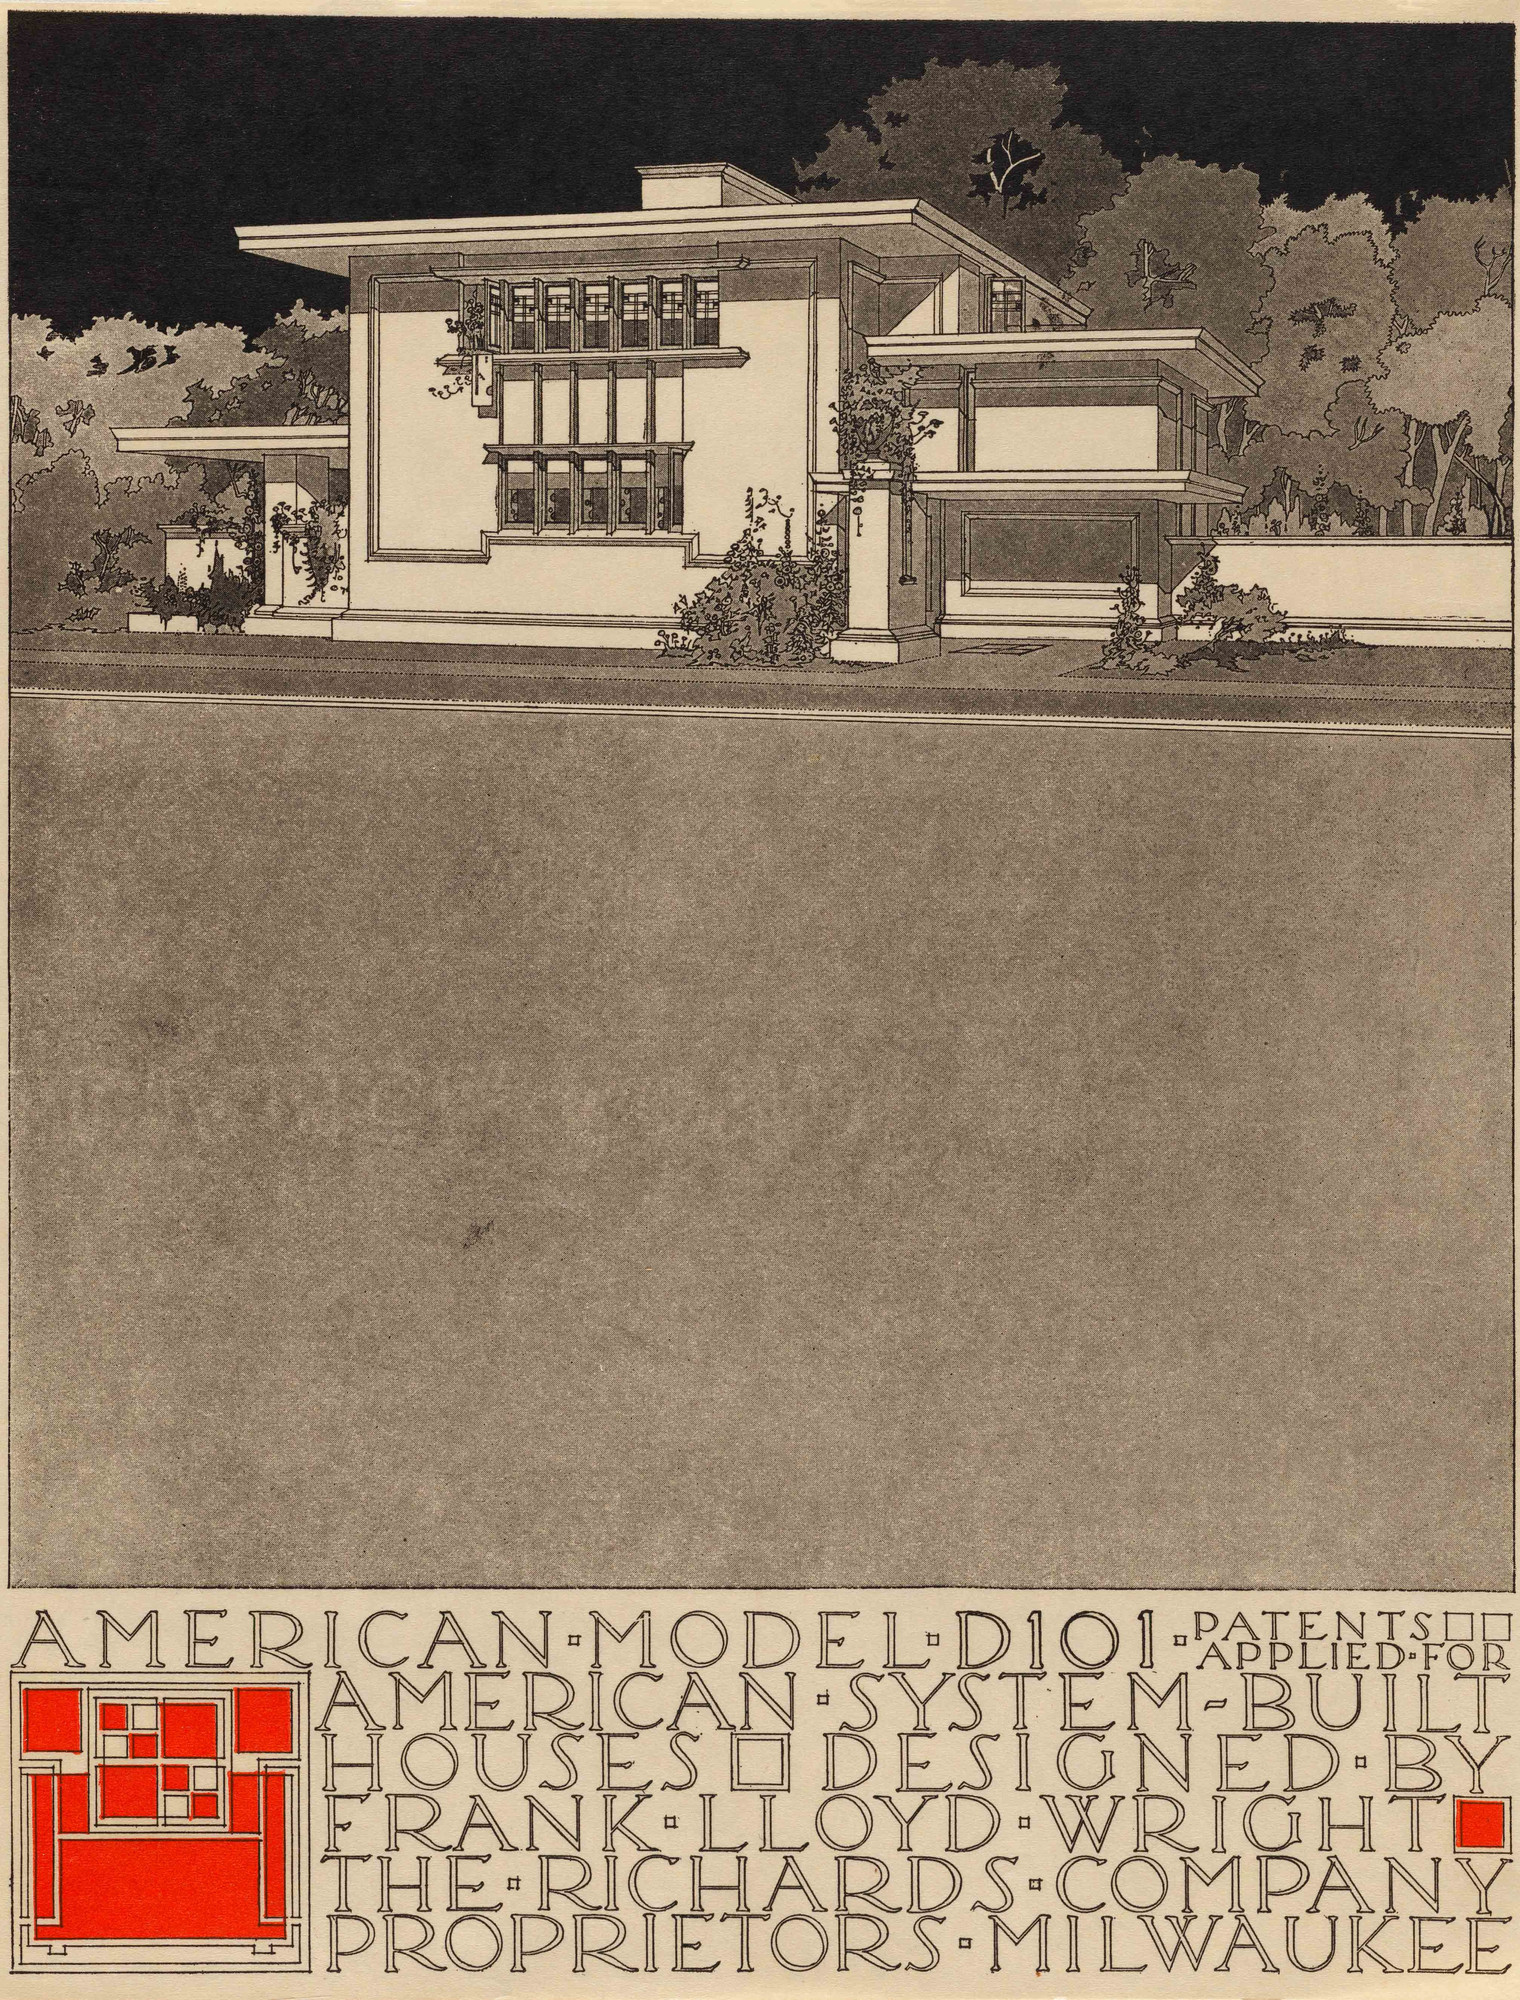 Frank-Lloyd-Wright-How-Can-We-Make-Housing-Accessible-for-Everyone.jpg